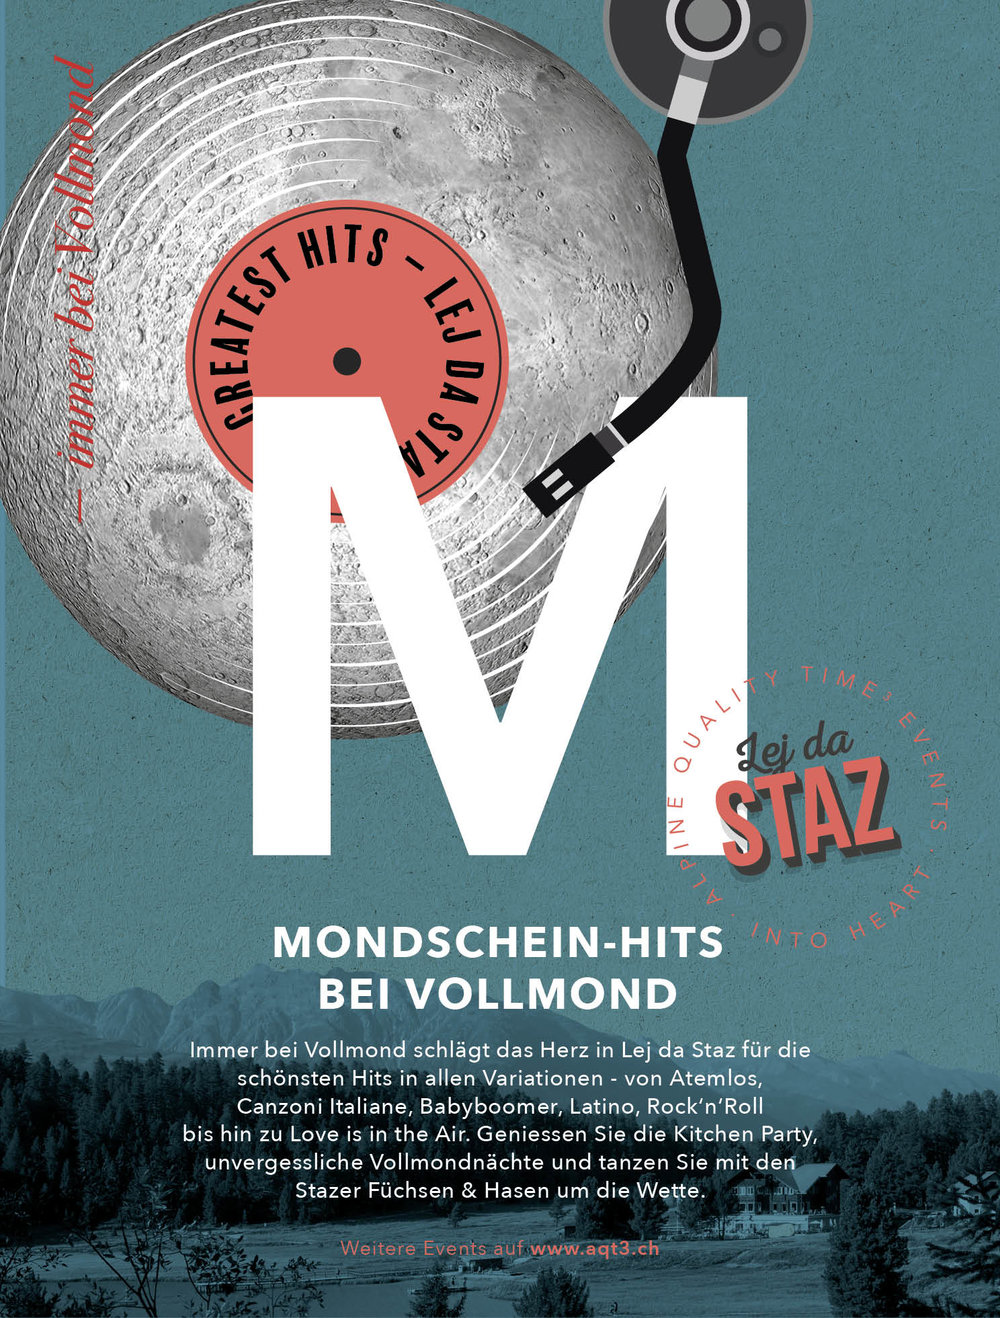 AQT3-events-monschein-hits-lejdastaz